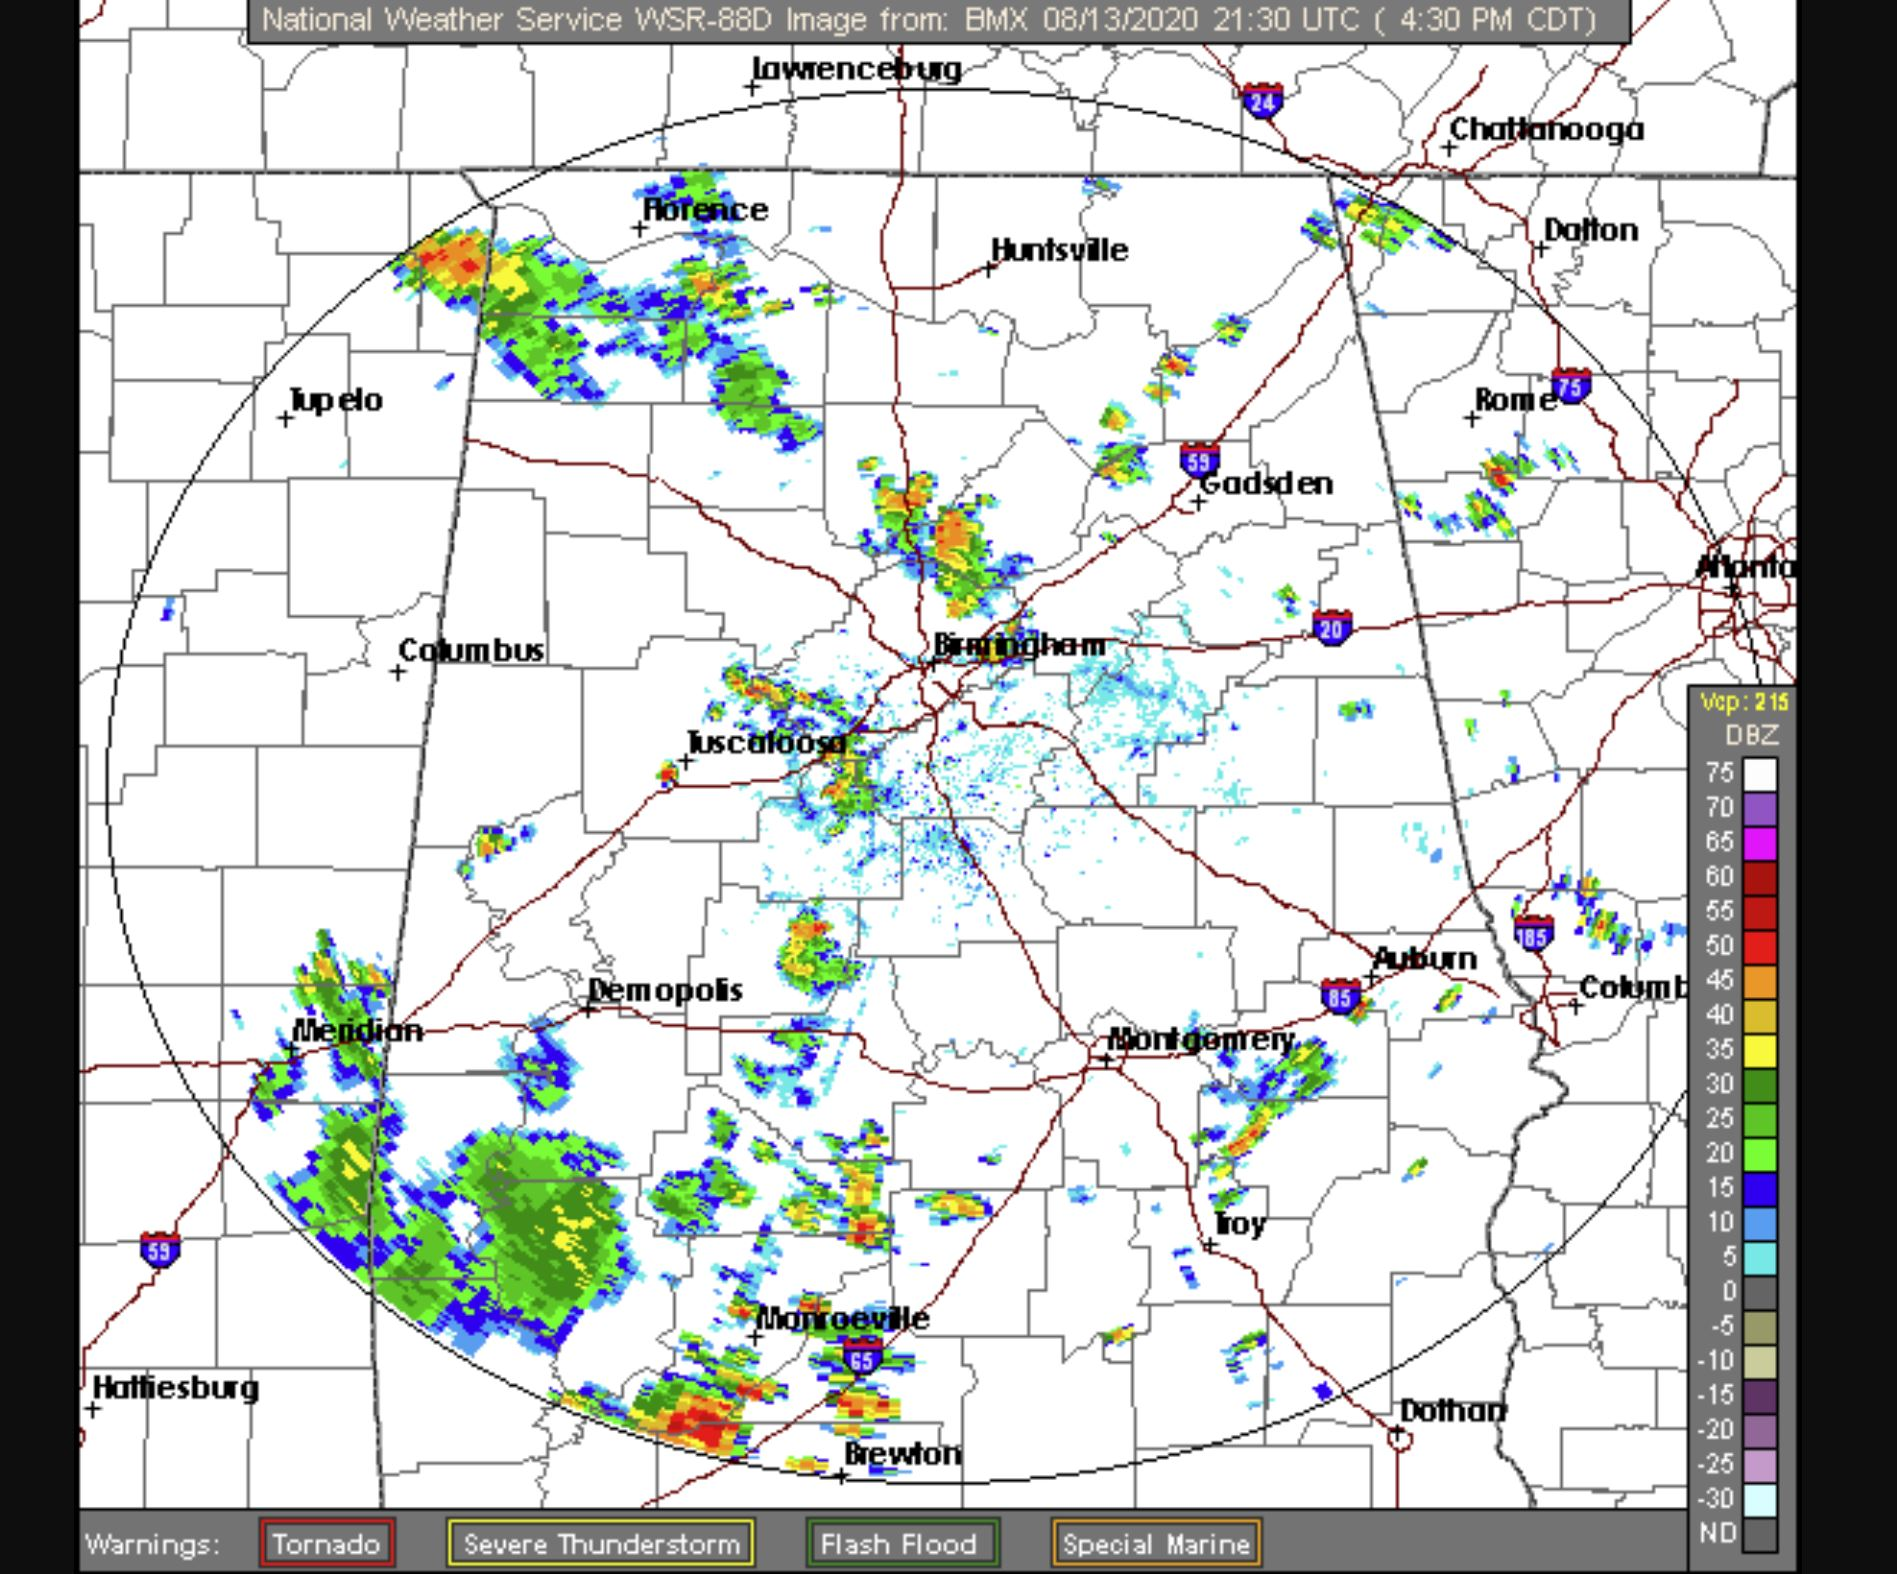 Significant Weather Advisory issued for northeastern Jefferson County, including Clay and Pinson